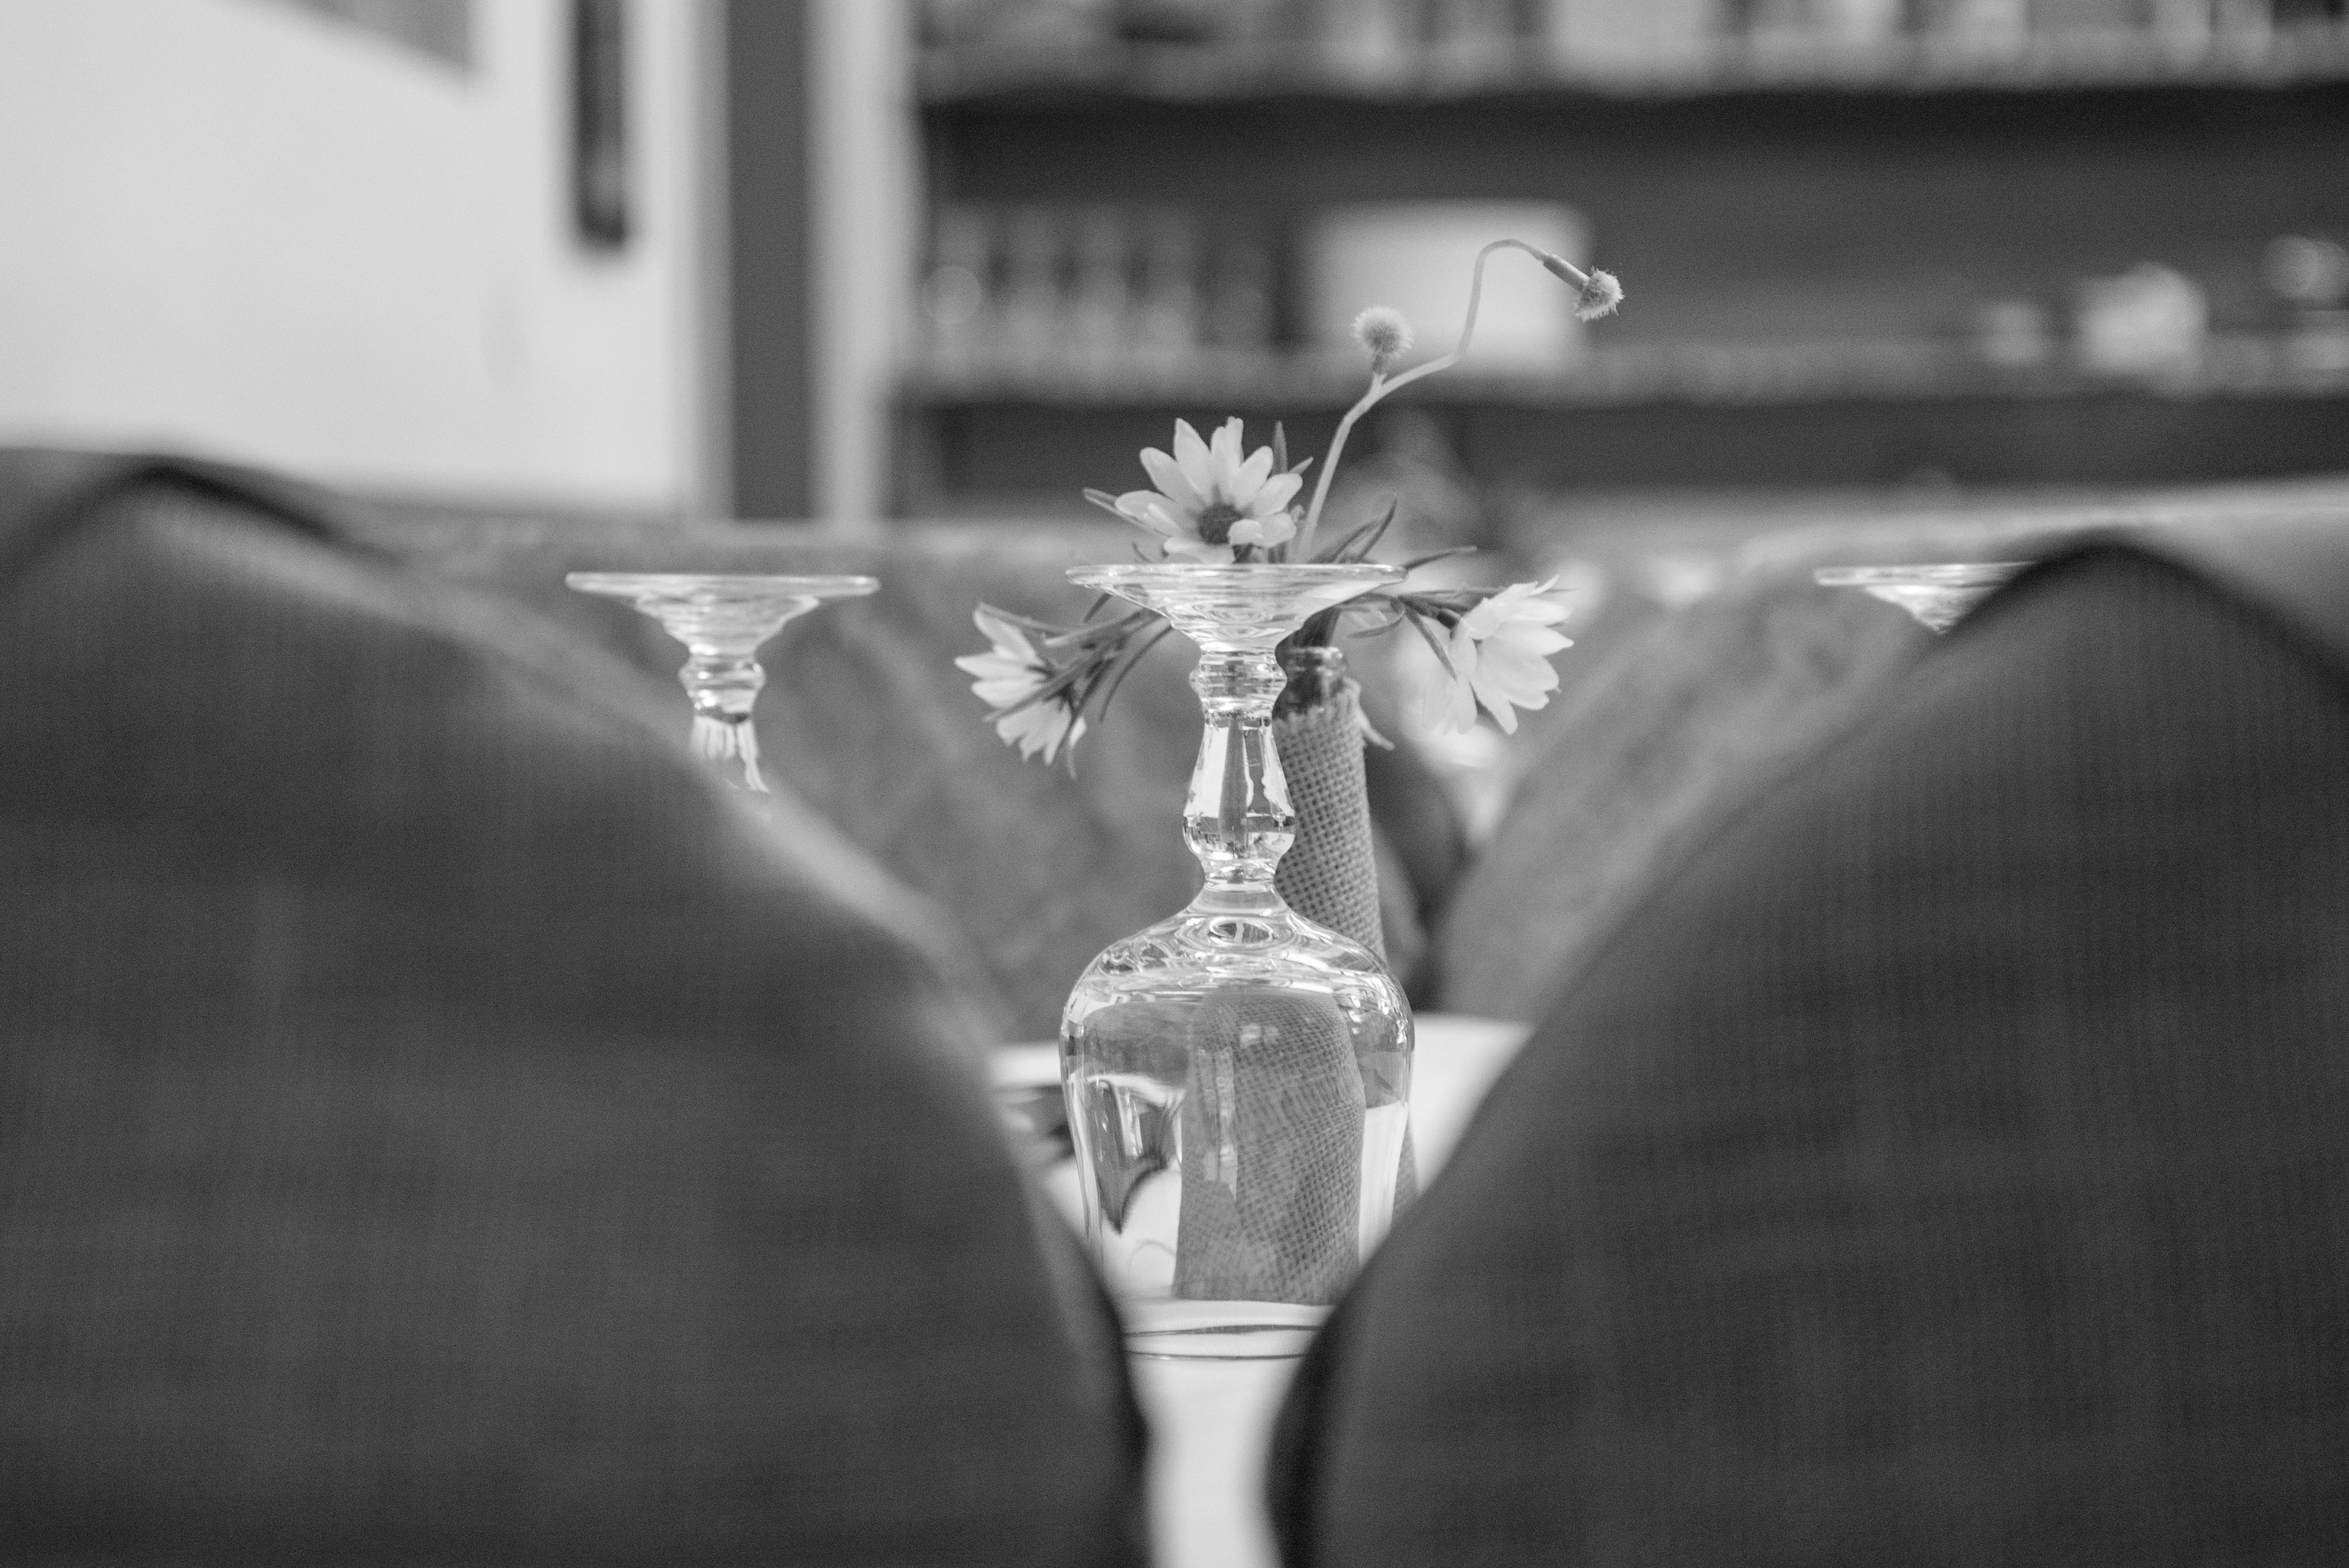 Upside Down Wine Glass Behind the Flower Grayscale Photo, Black and white, Blur, Chairs, Diner, HQ Photo